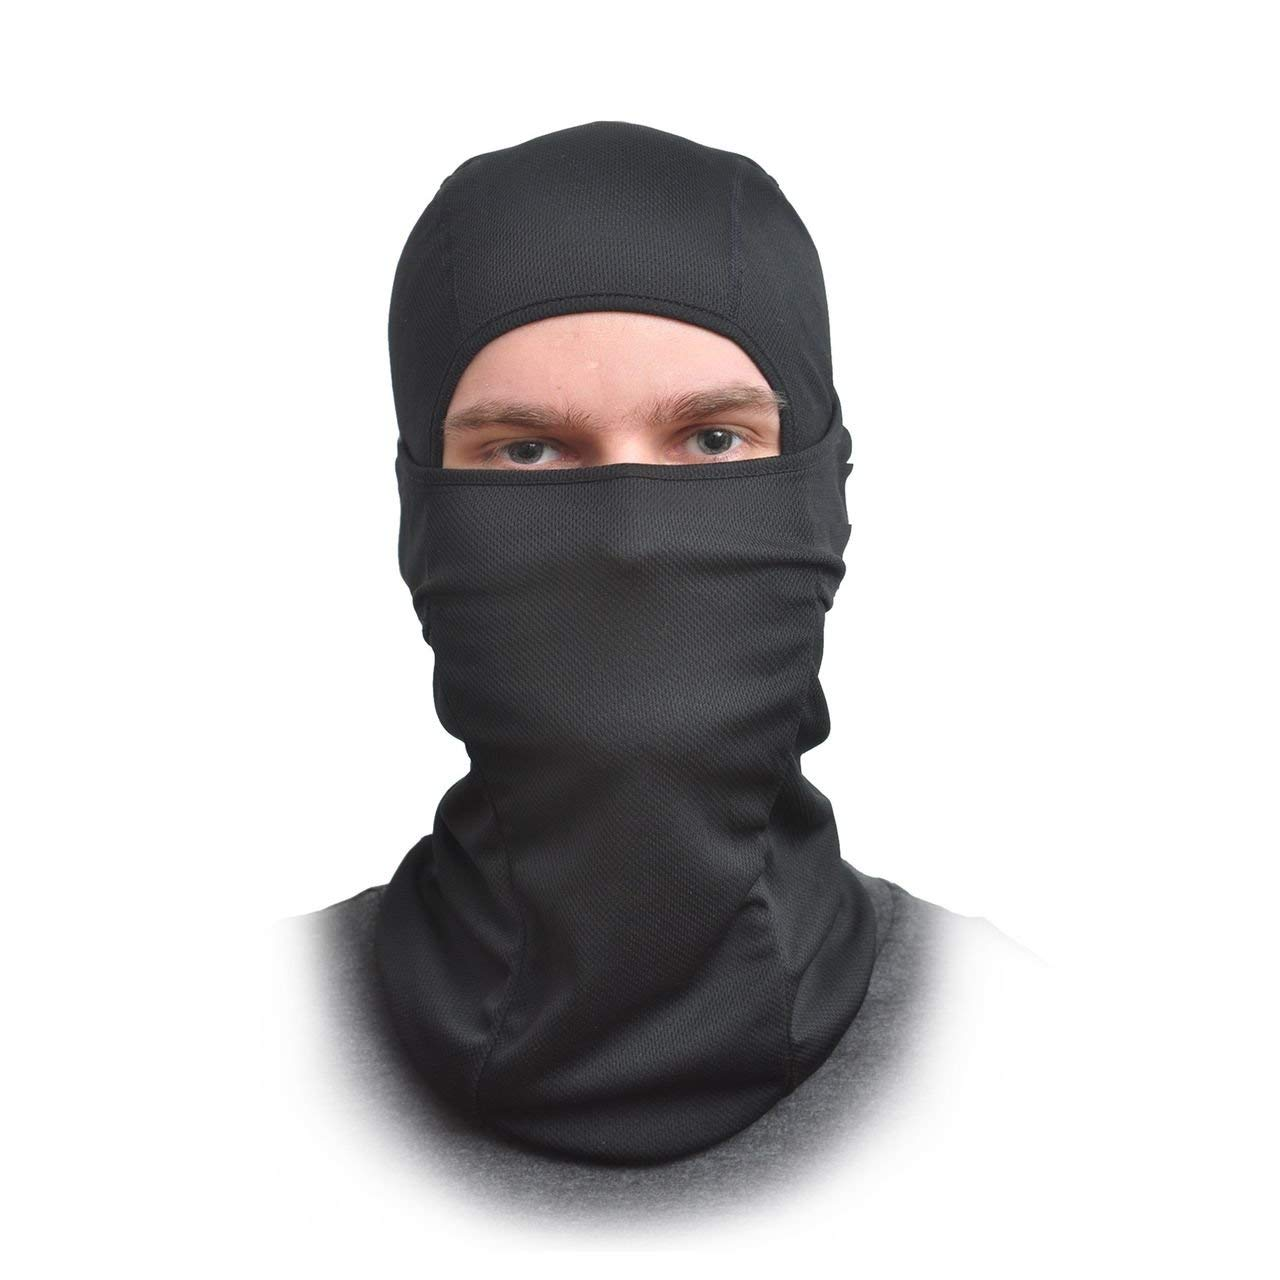 Balaclava Face Mask - One Size Fits All Elastic Fabric - Protects From Wind, Sun, Dust - Ideal for Motorcycle, Face Mask for Ski, Cycling, Running or Hiking - Summer or Winter Gear Approved for Automotive